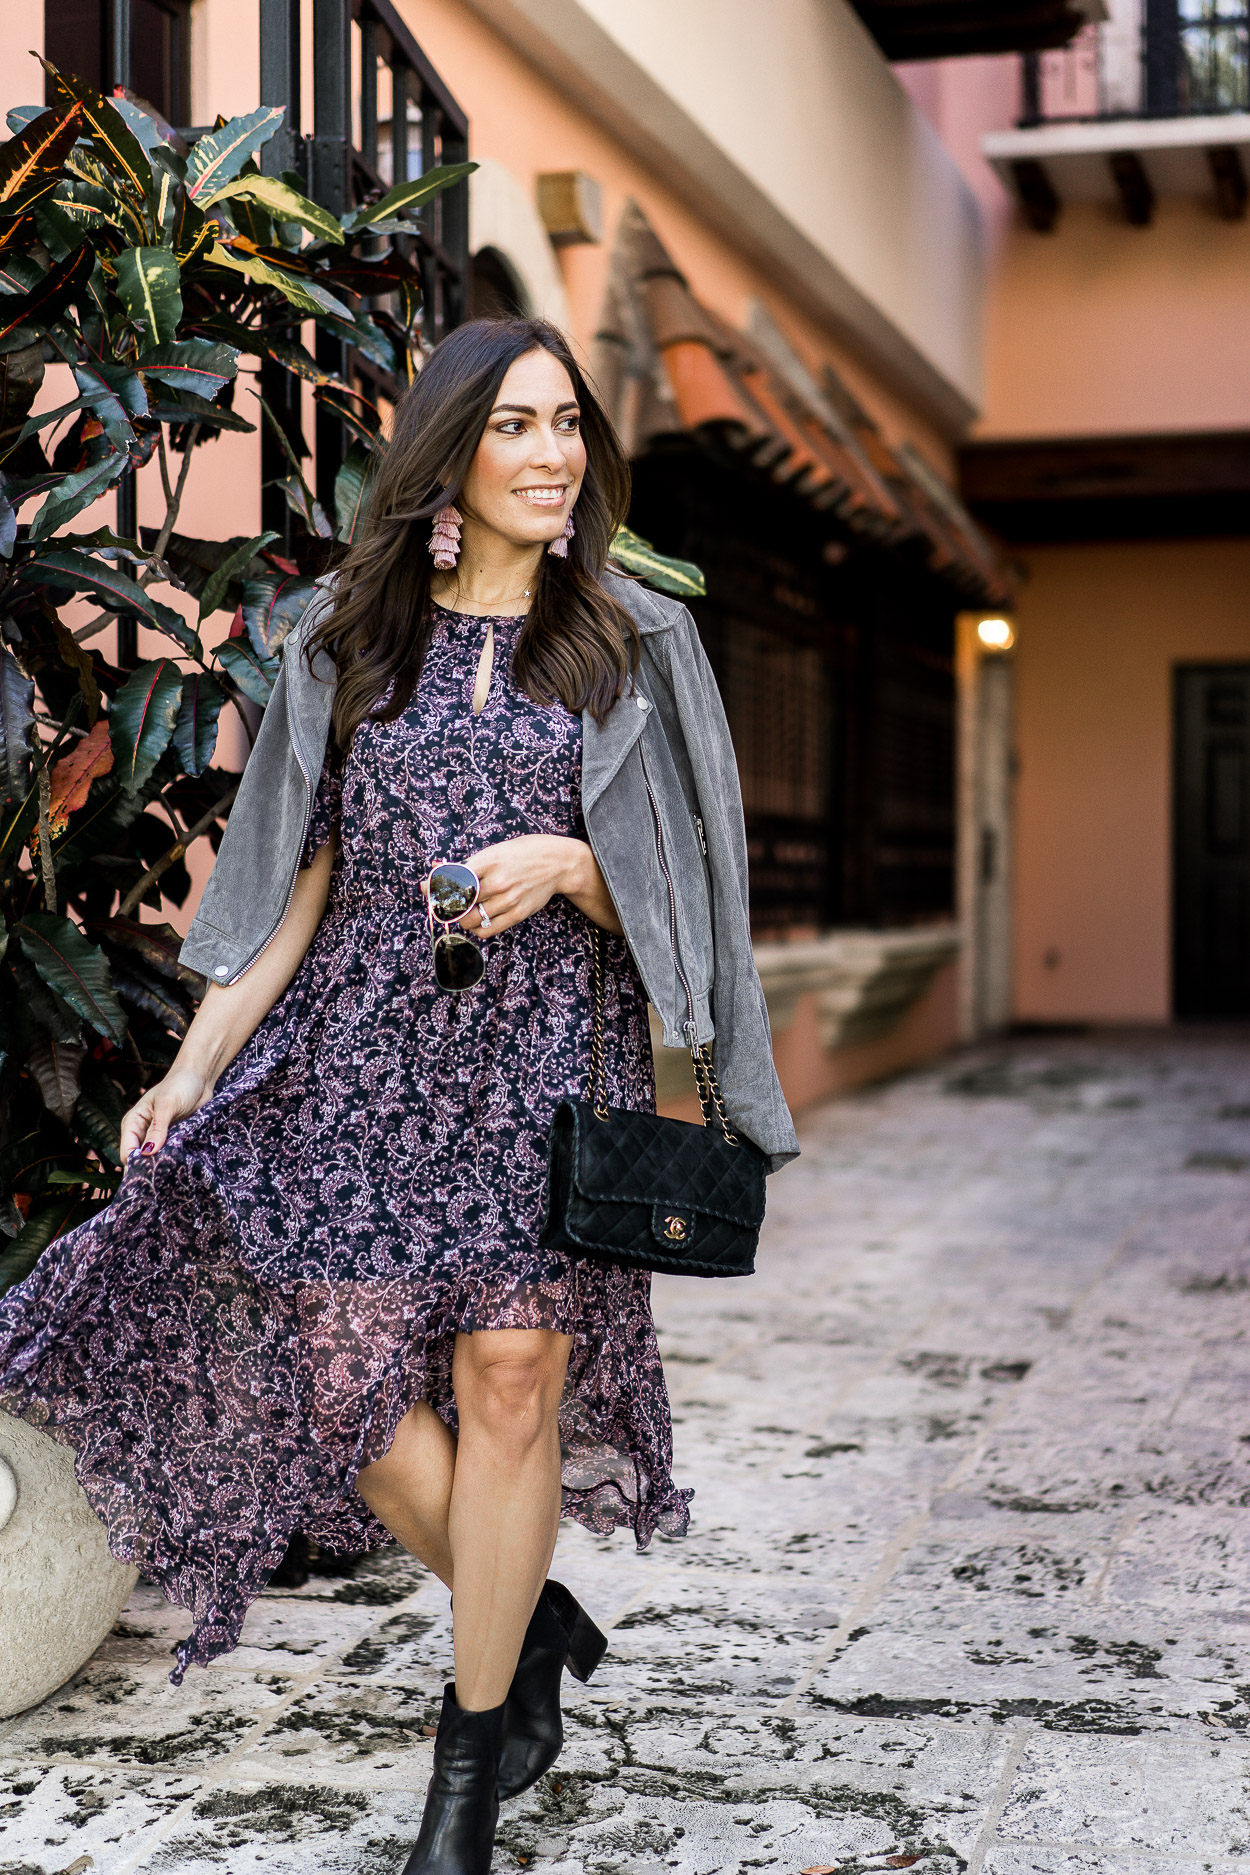 Get all your winter date night outfits from Saks like this gorgeous Joie Agnek hi low floral dress styled by fashion blogger A Glam Lifestyle